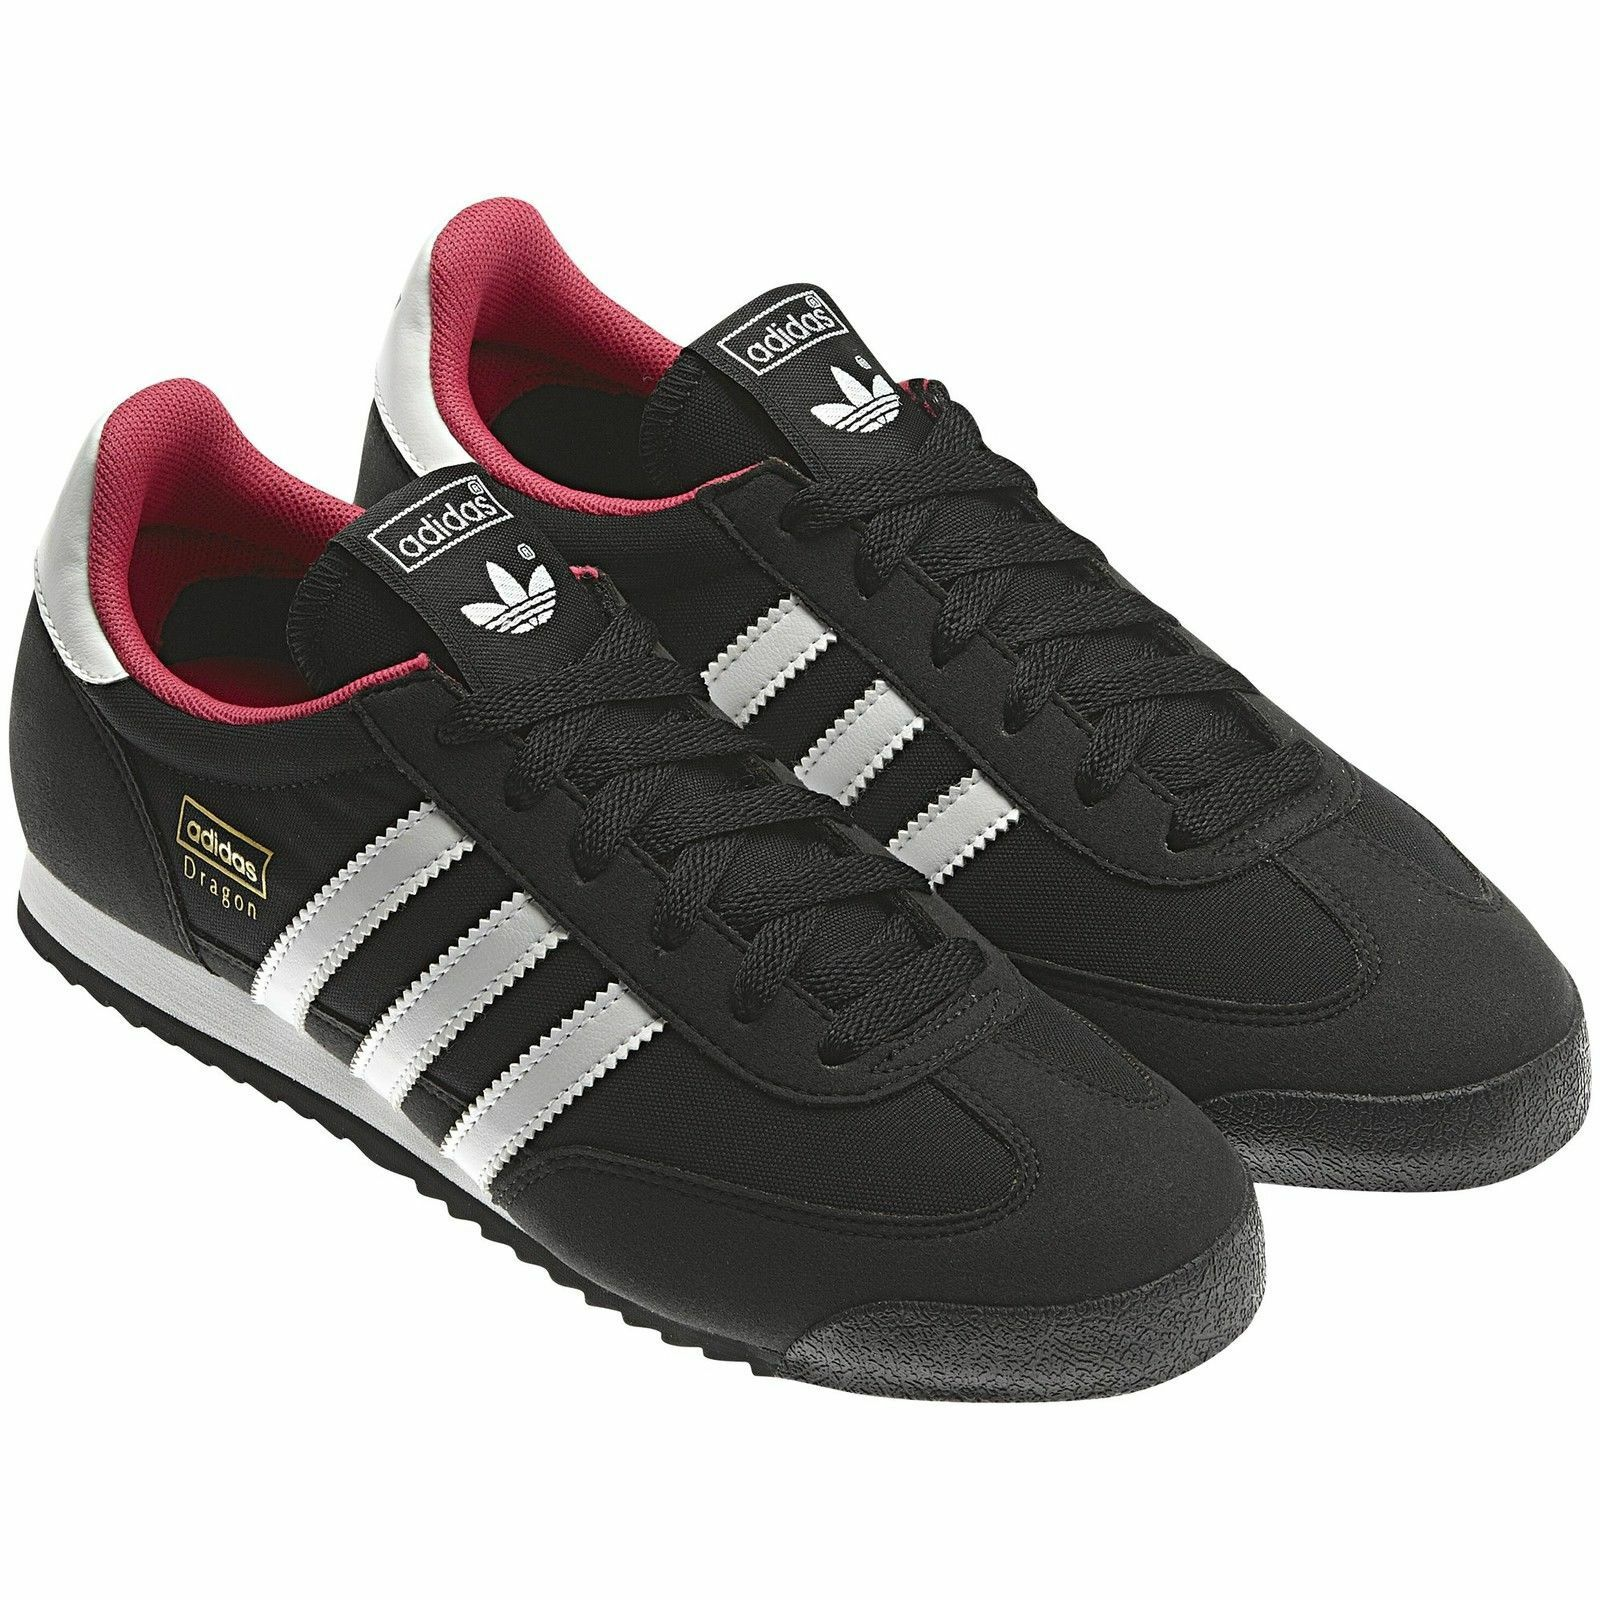 ADIDAS ORIGINALS DRAGON Damenschuhe TRAINERS BLACK UK SIZE 4.5